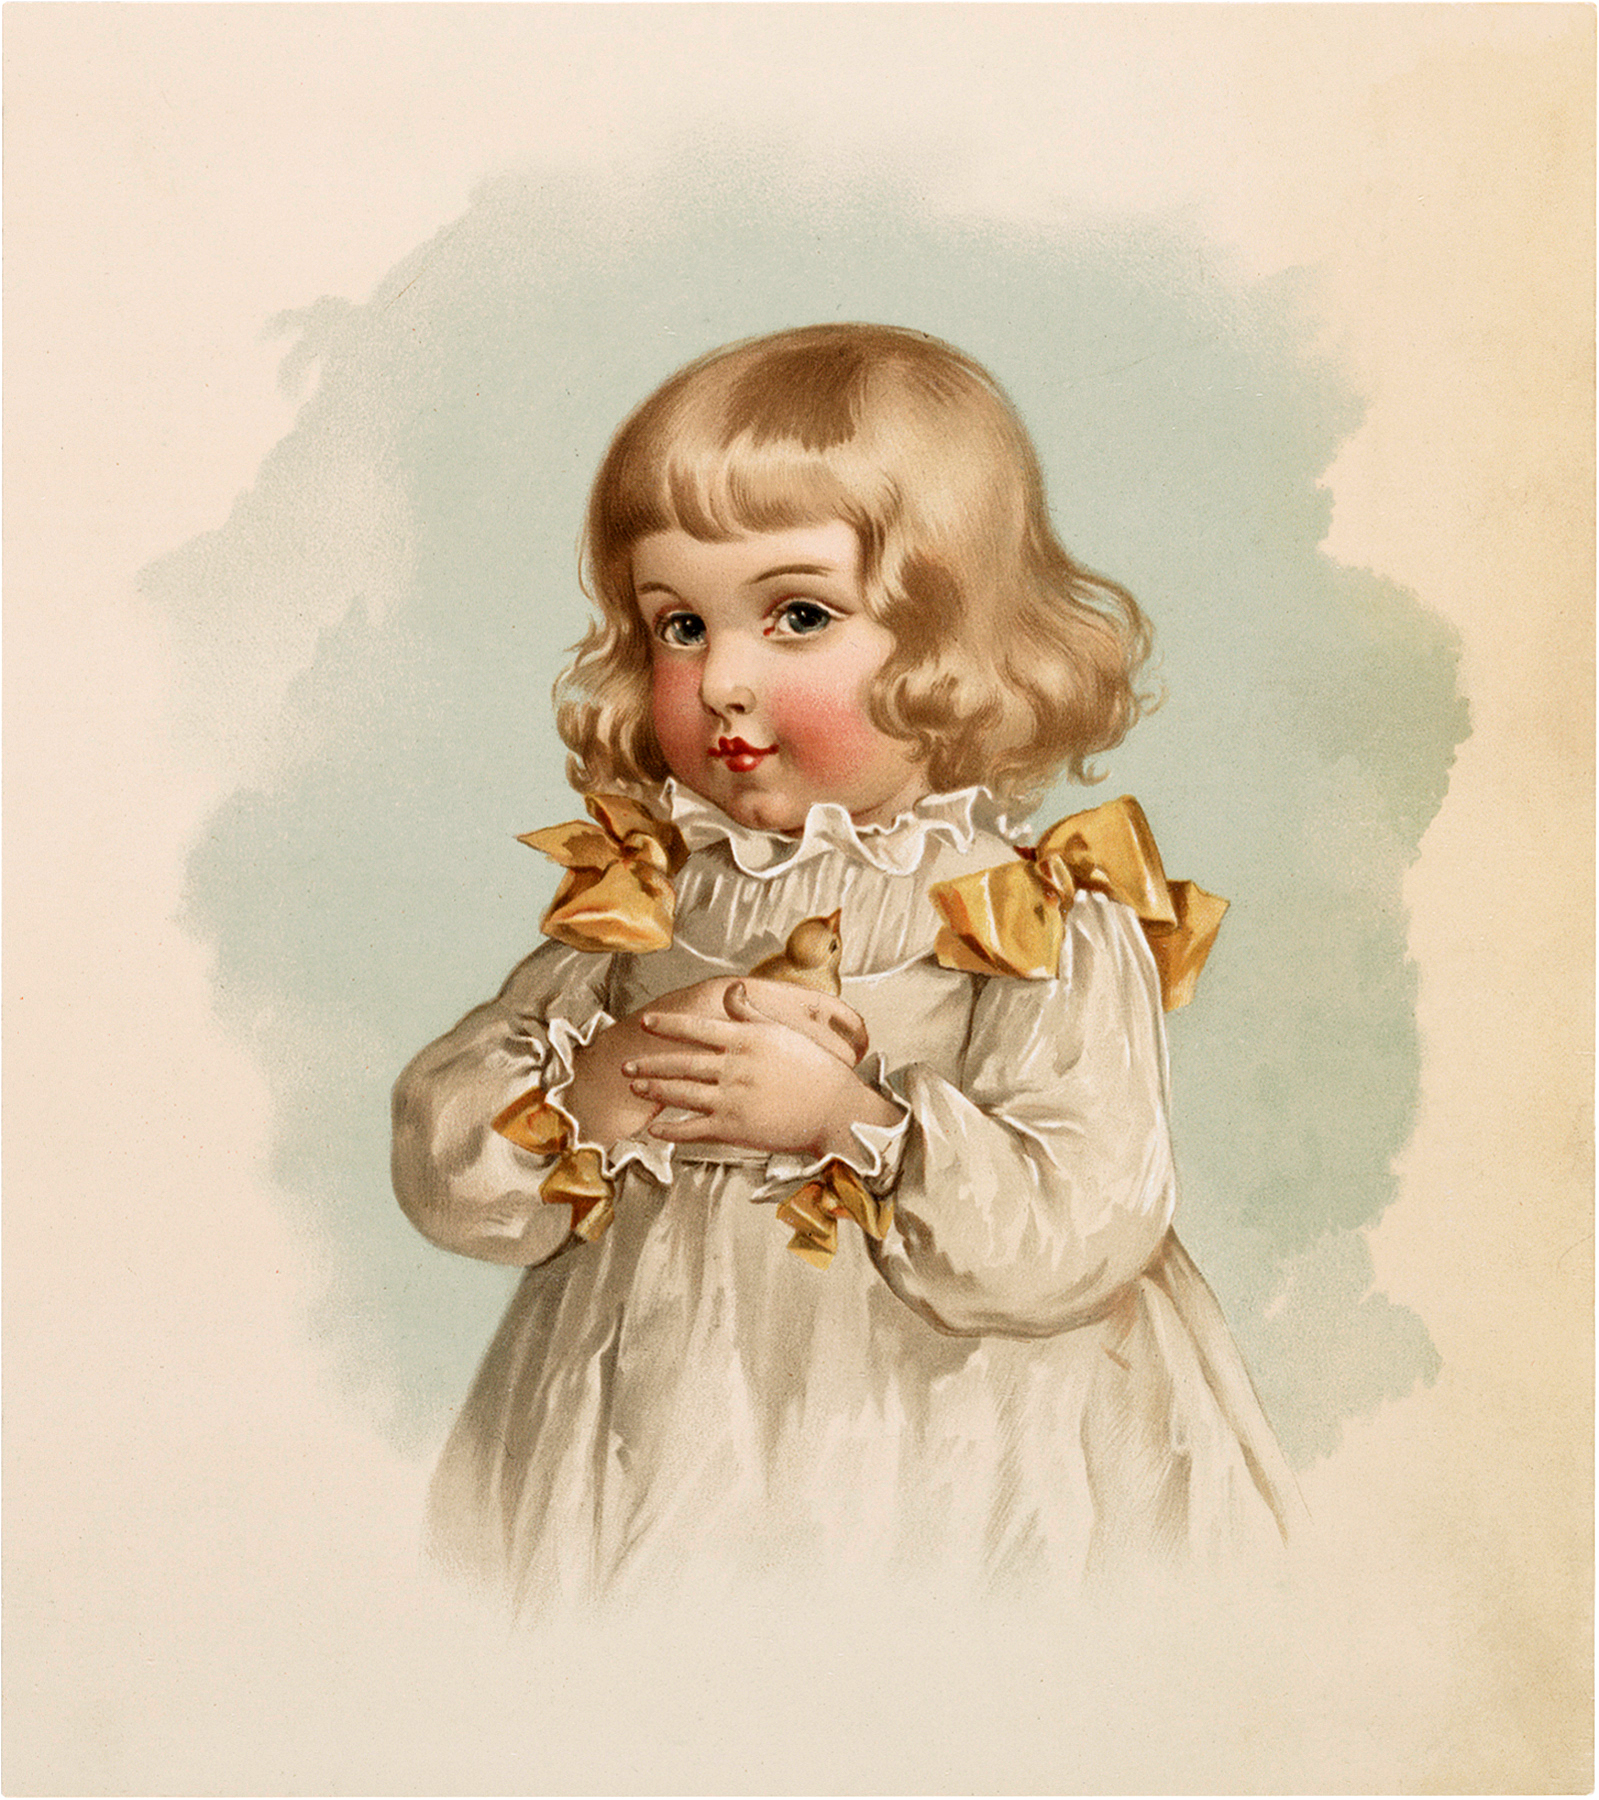 Vintage Girl with Chick Image